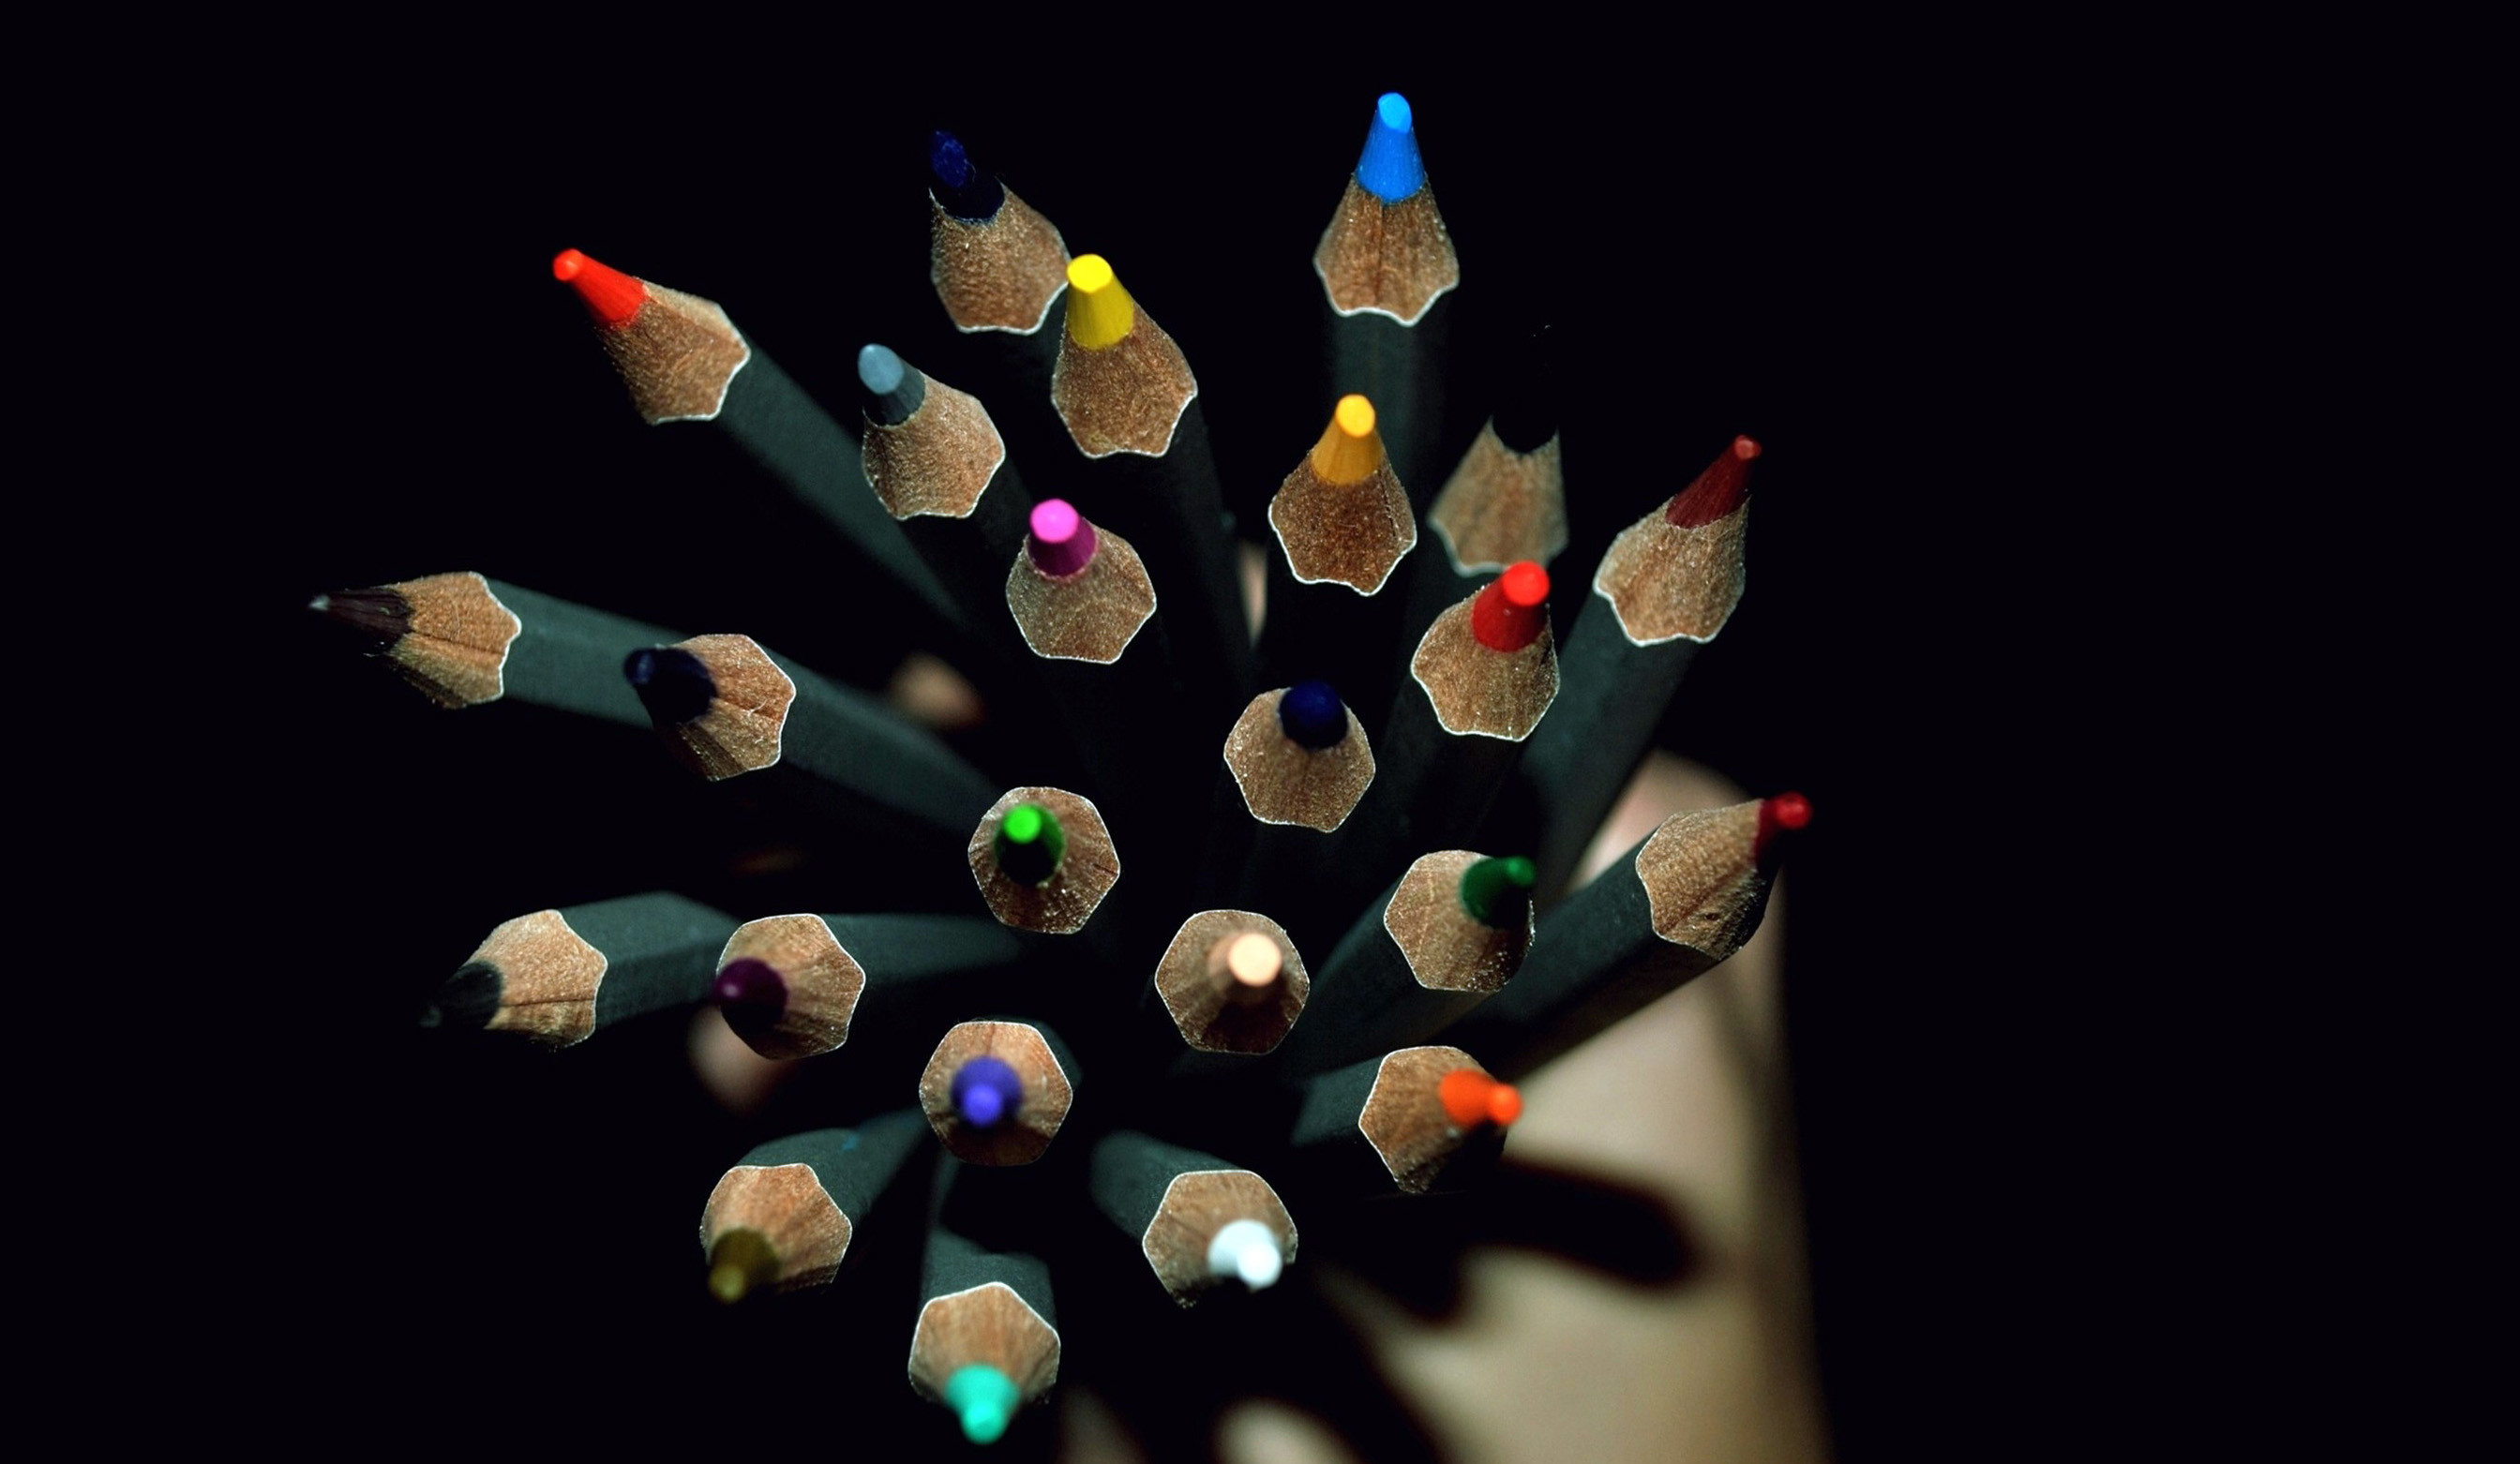 Multicolorpencils On The Black Screen Wallpapers HD / Desktop and Mobile  Backgrounds